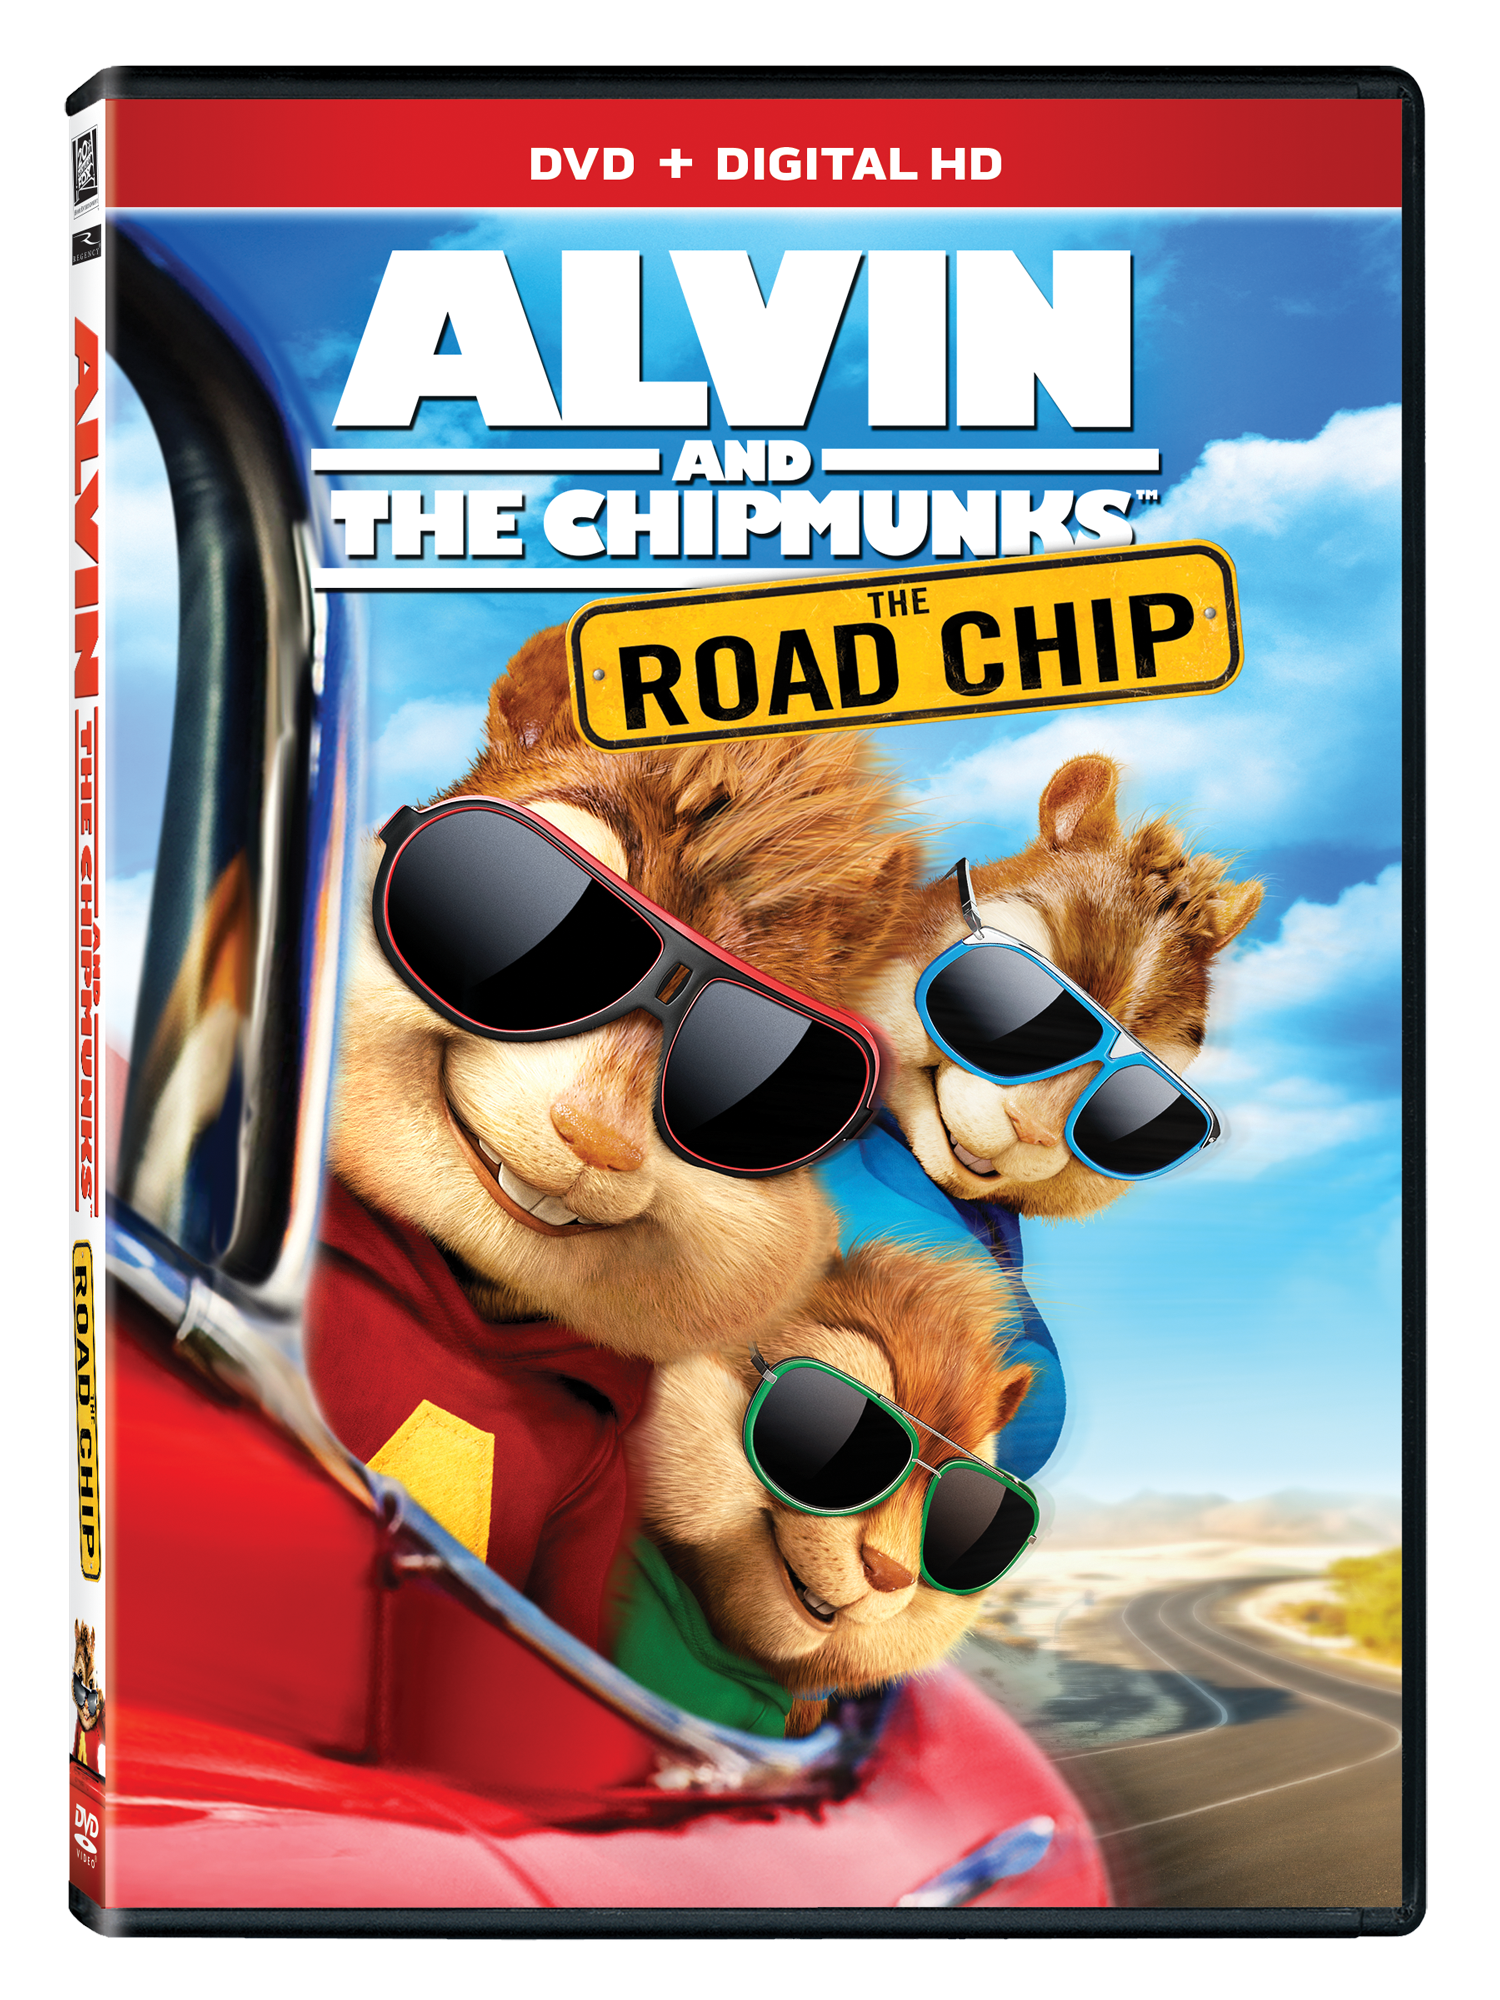 Alvin_Road_Chip_DVD-Digital_Spine